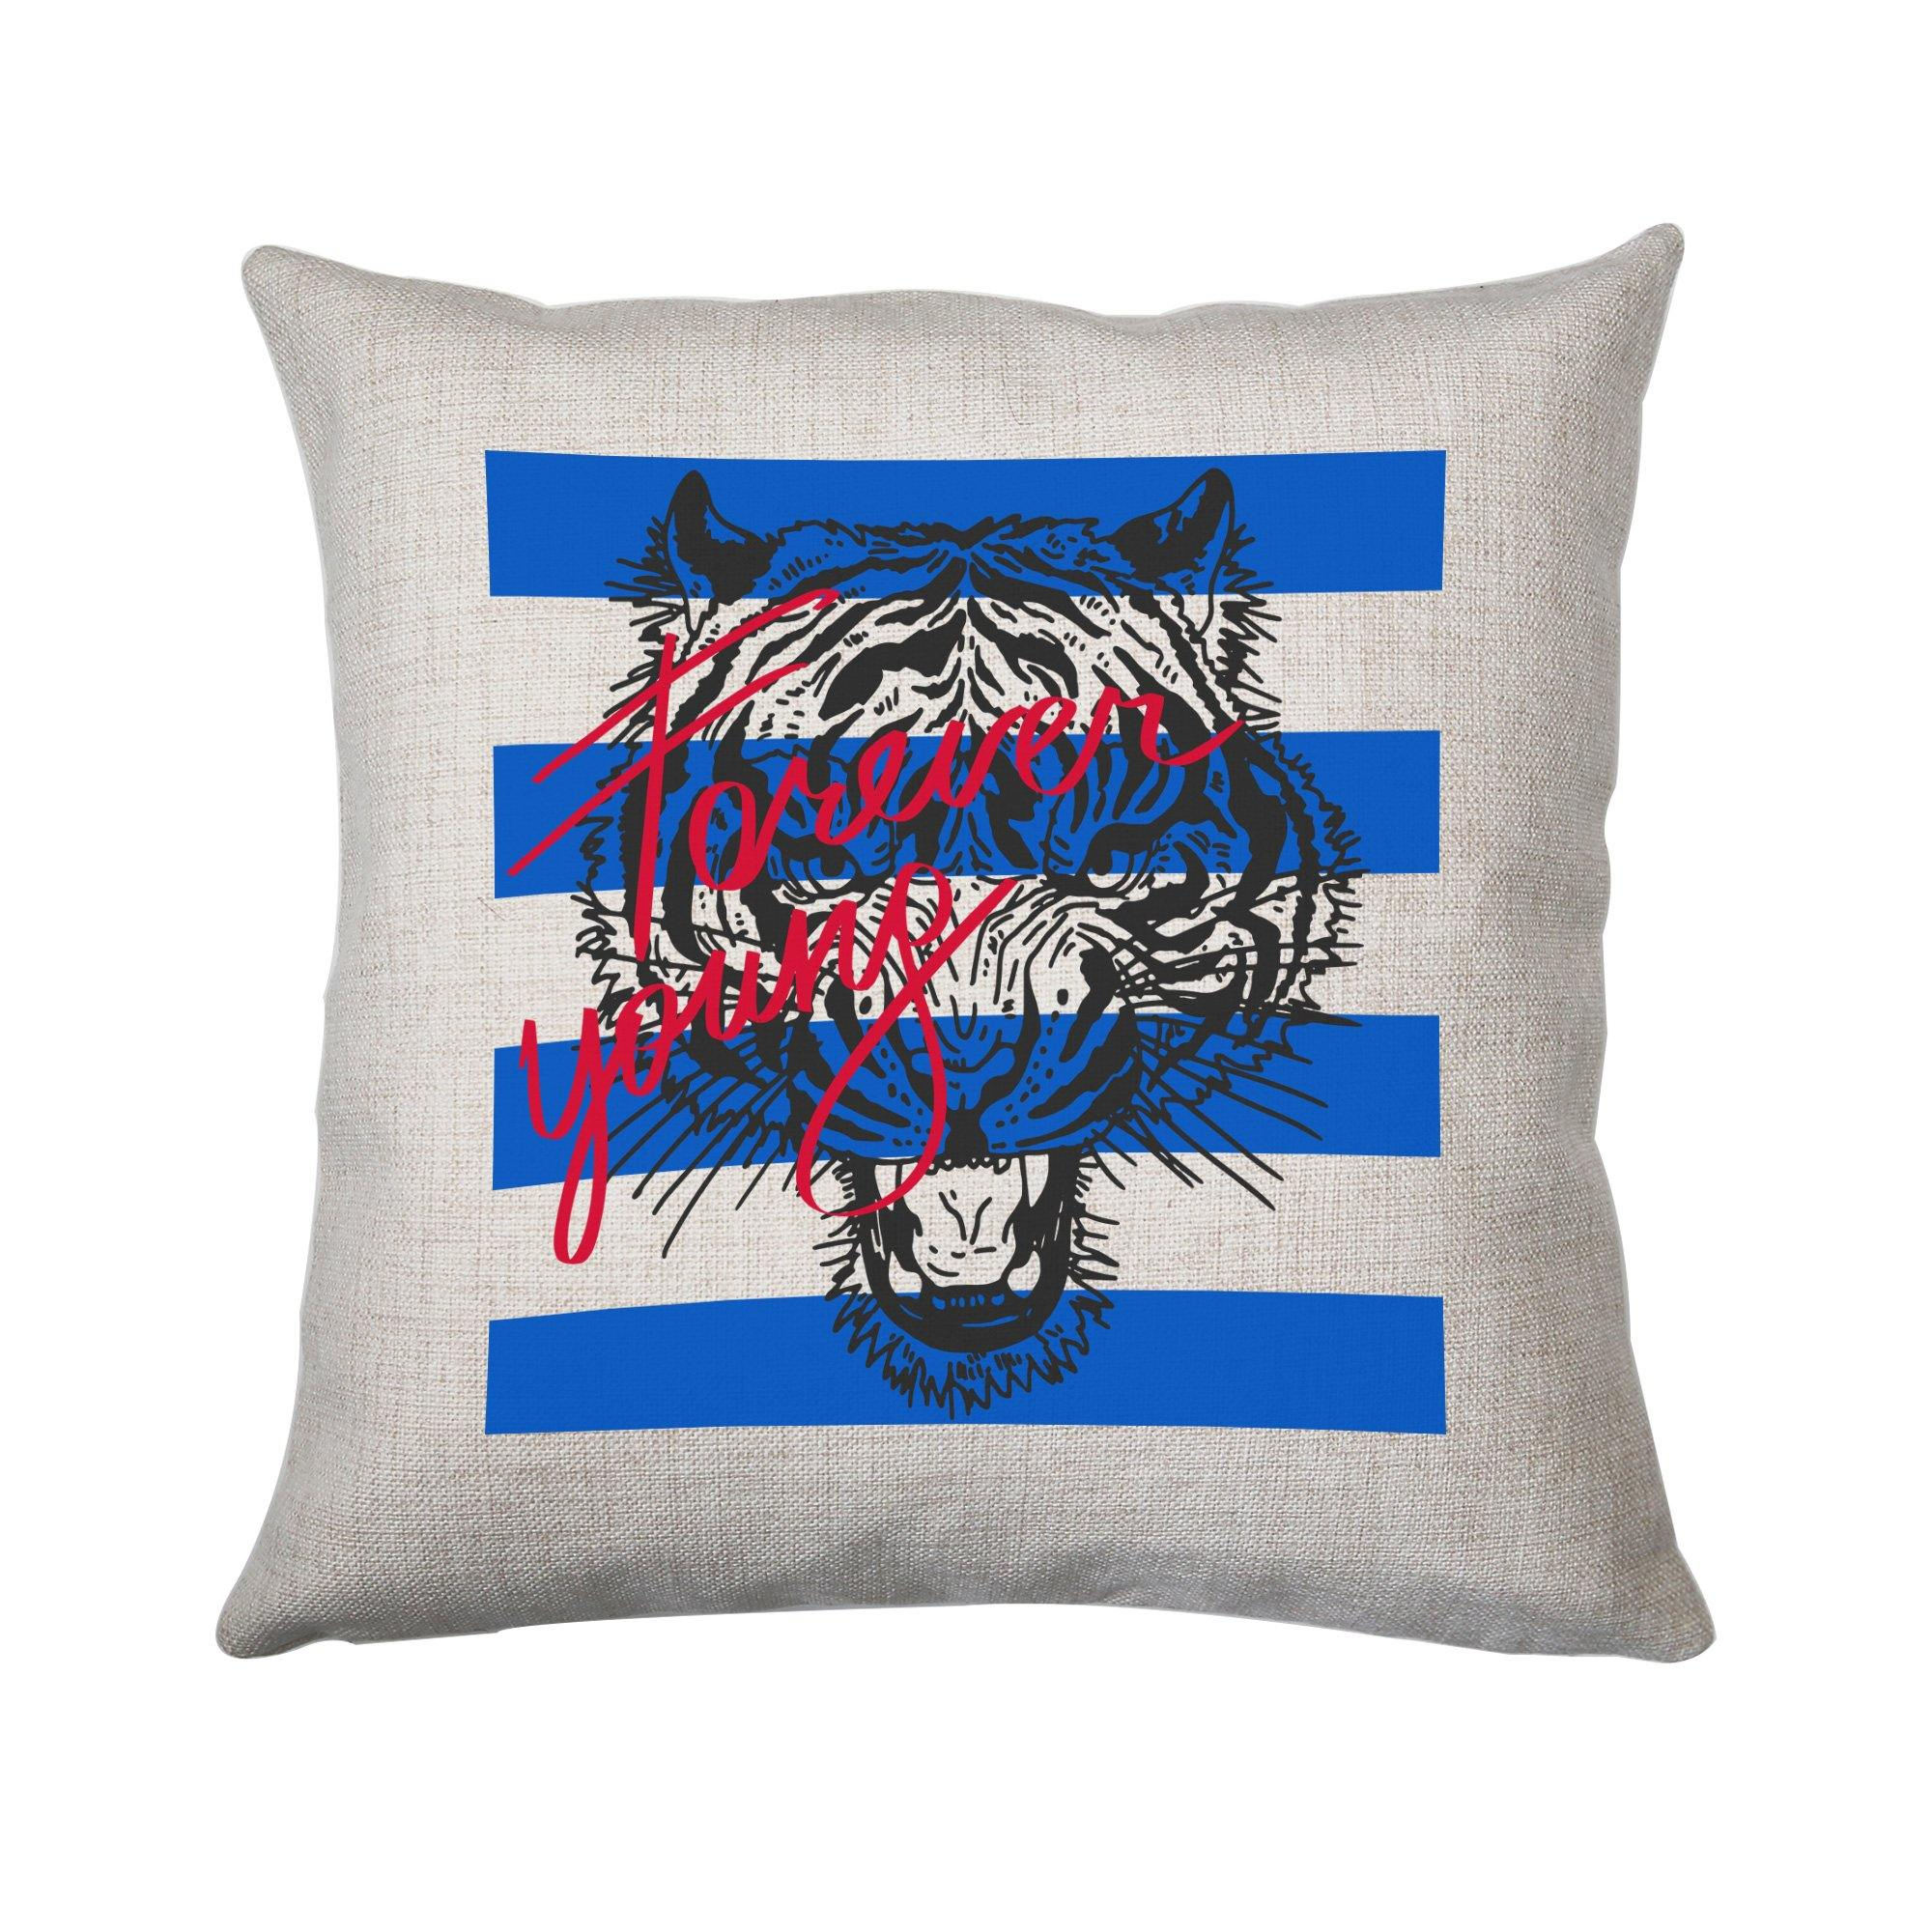 Forever Young Abstract Art Design Cushion Cover Pillowcase Linen Home Decor Graphic Gear